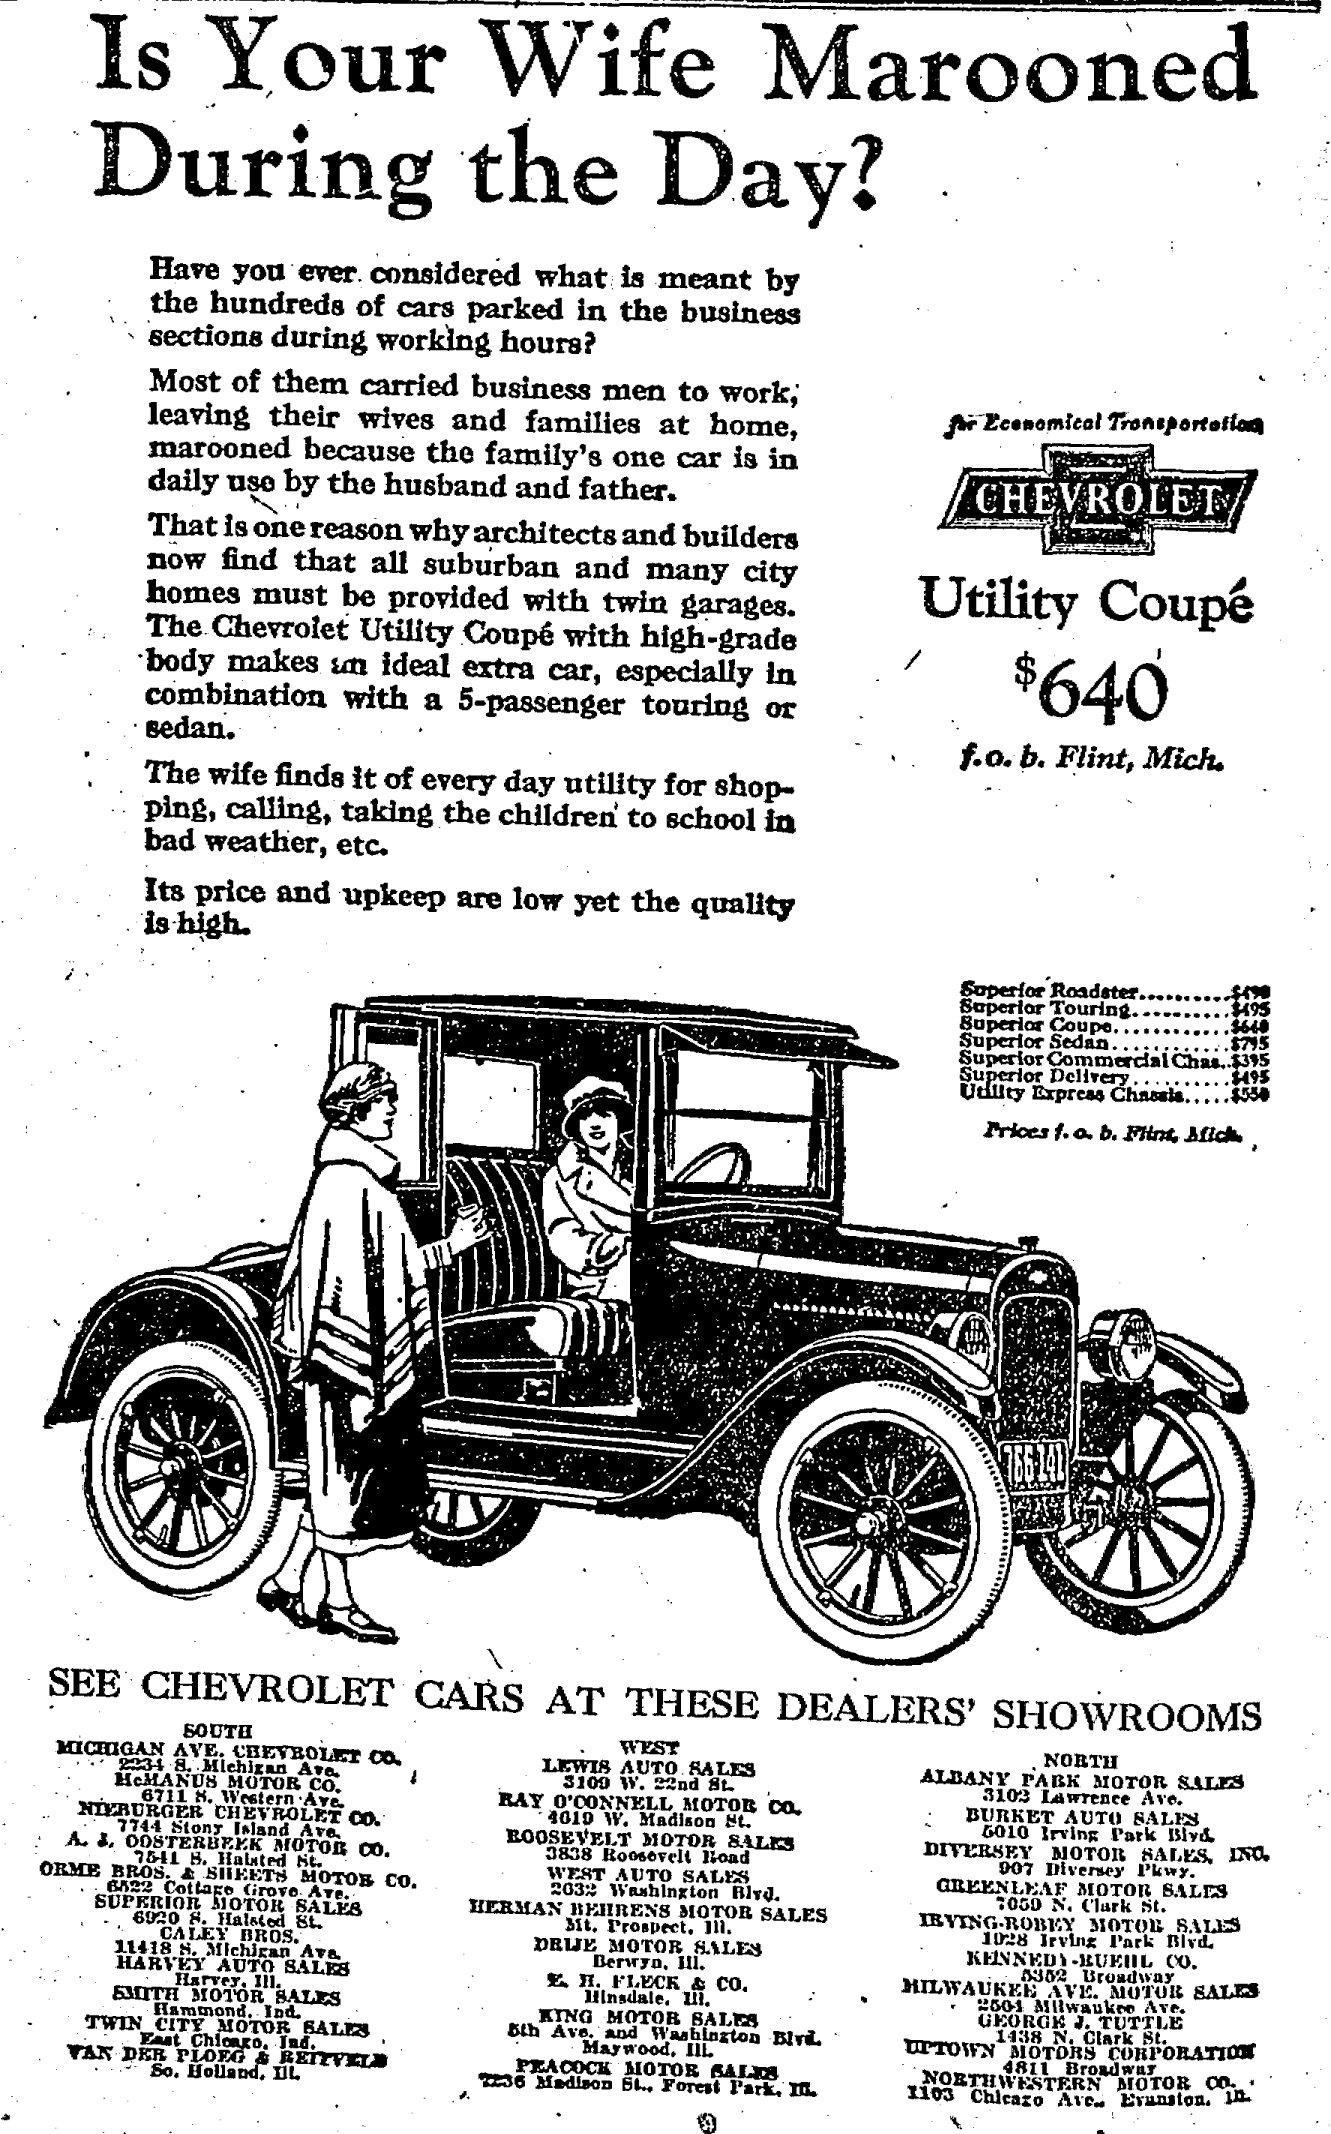 1924 Is your wife marooned during the day, what with you